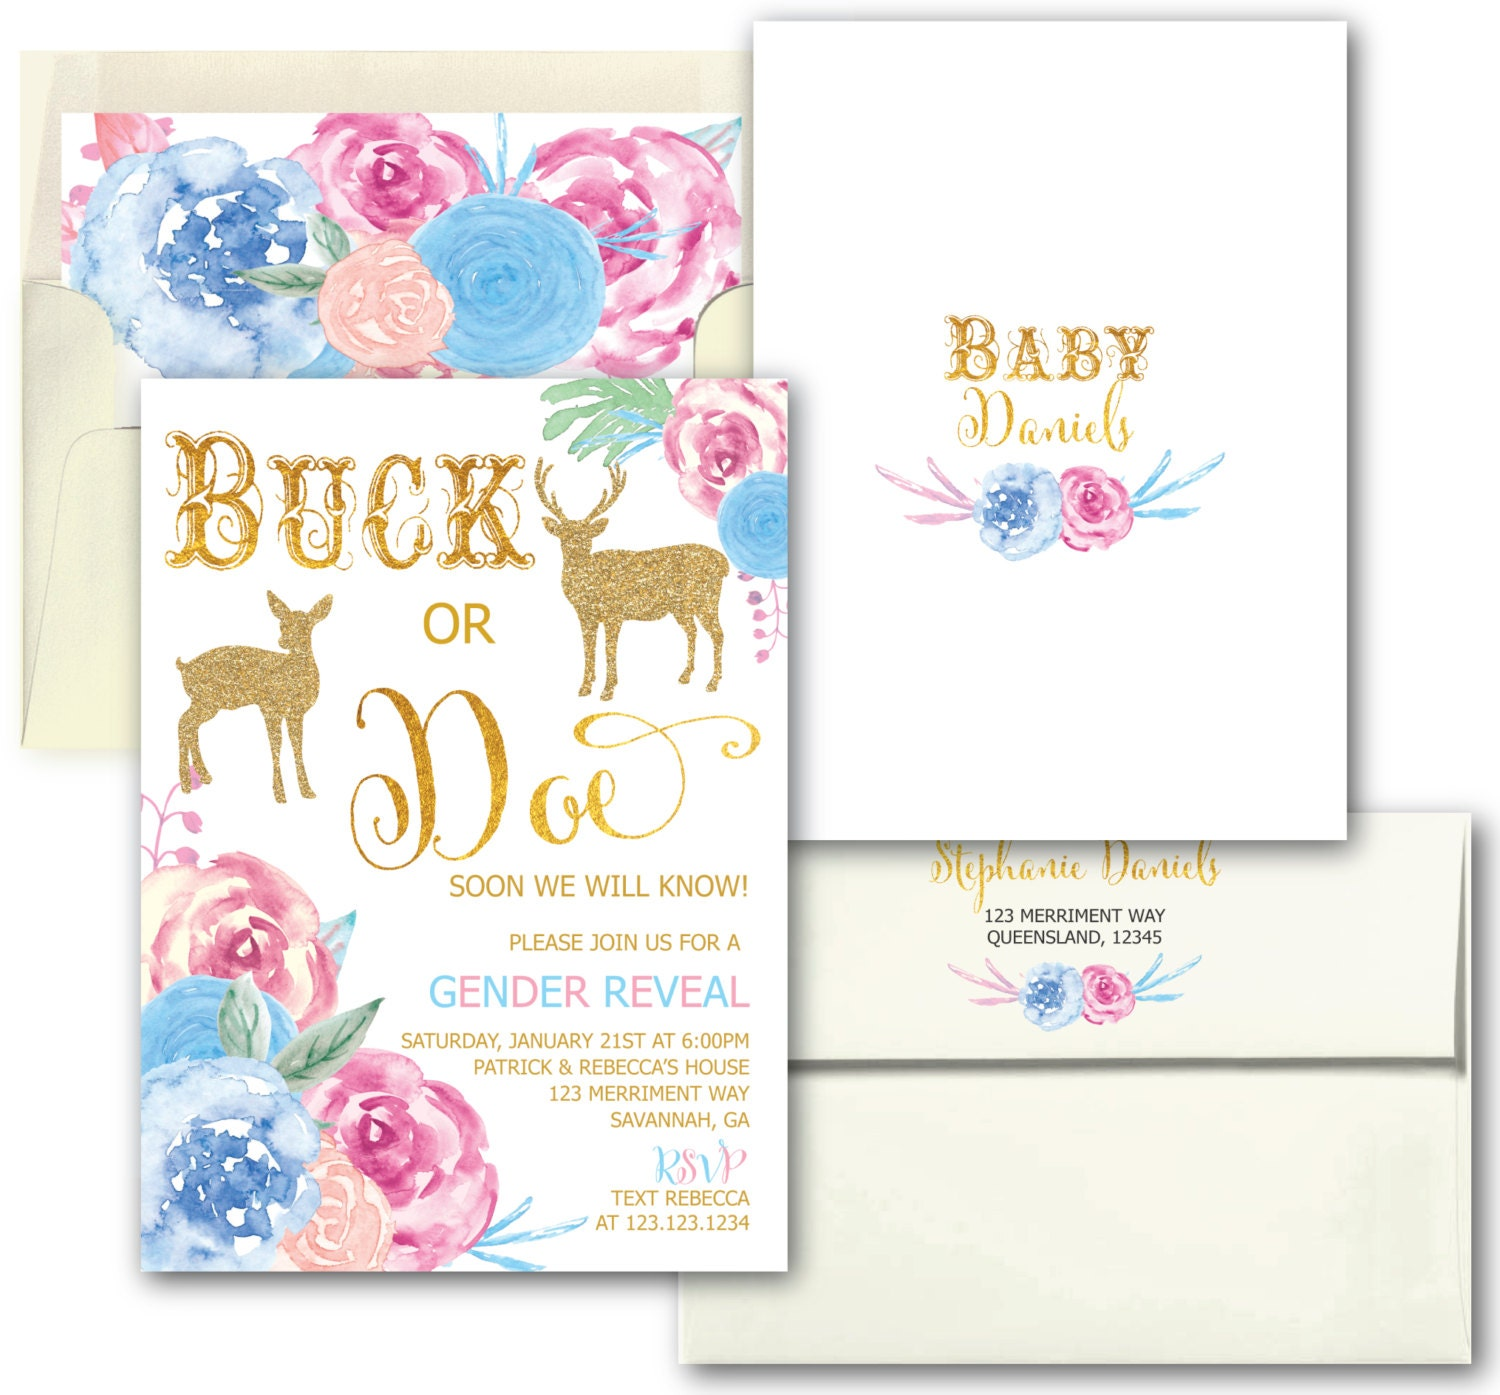 Gender Reveal Invitation Buck Or Doe Party He She Boy Girl Gold Floral SAVANNAH COLLECTION